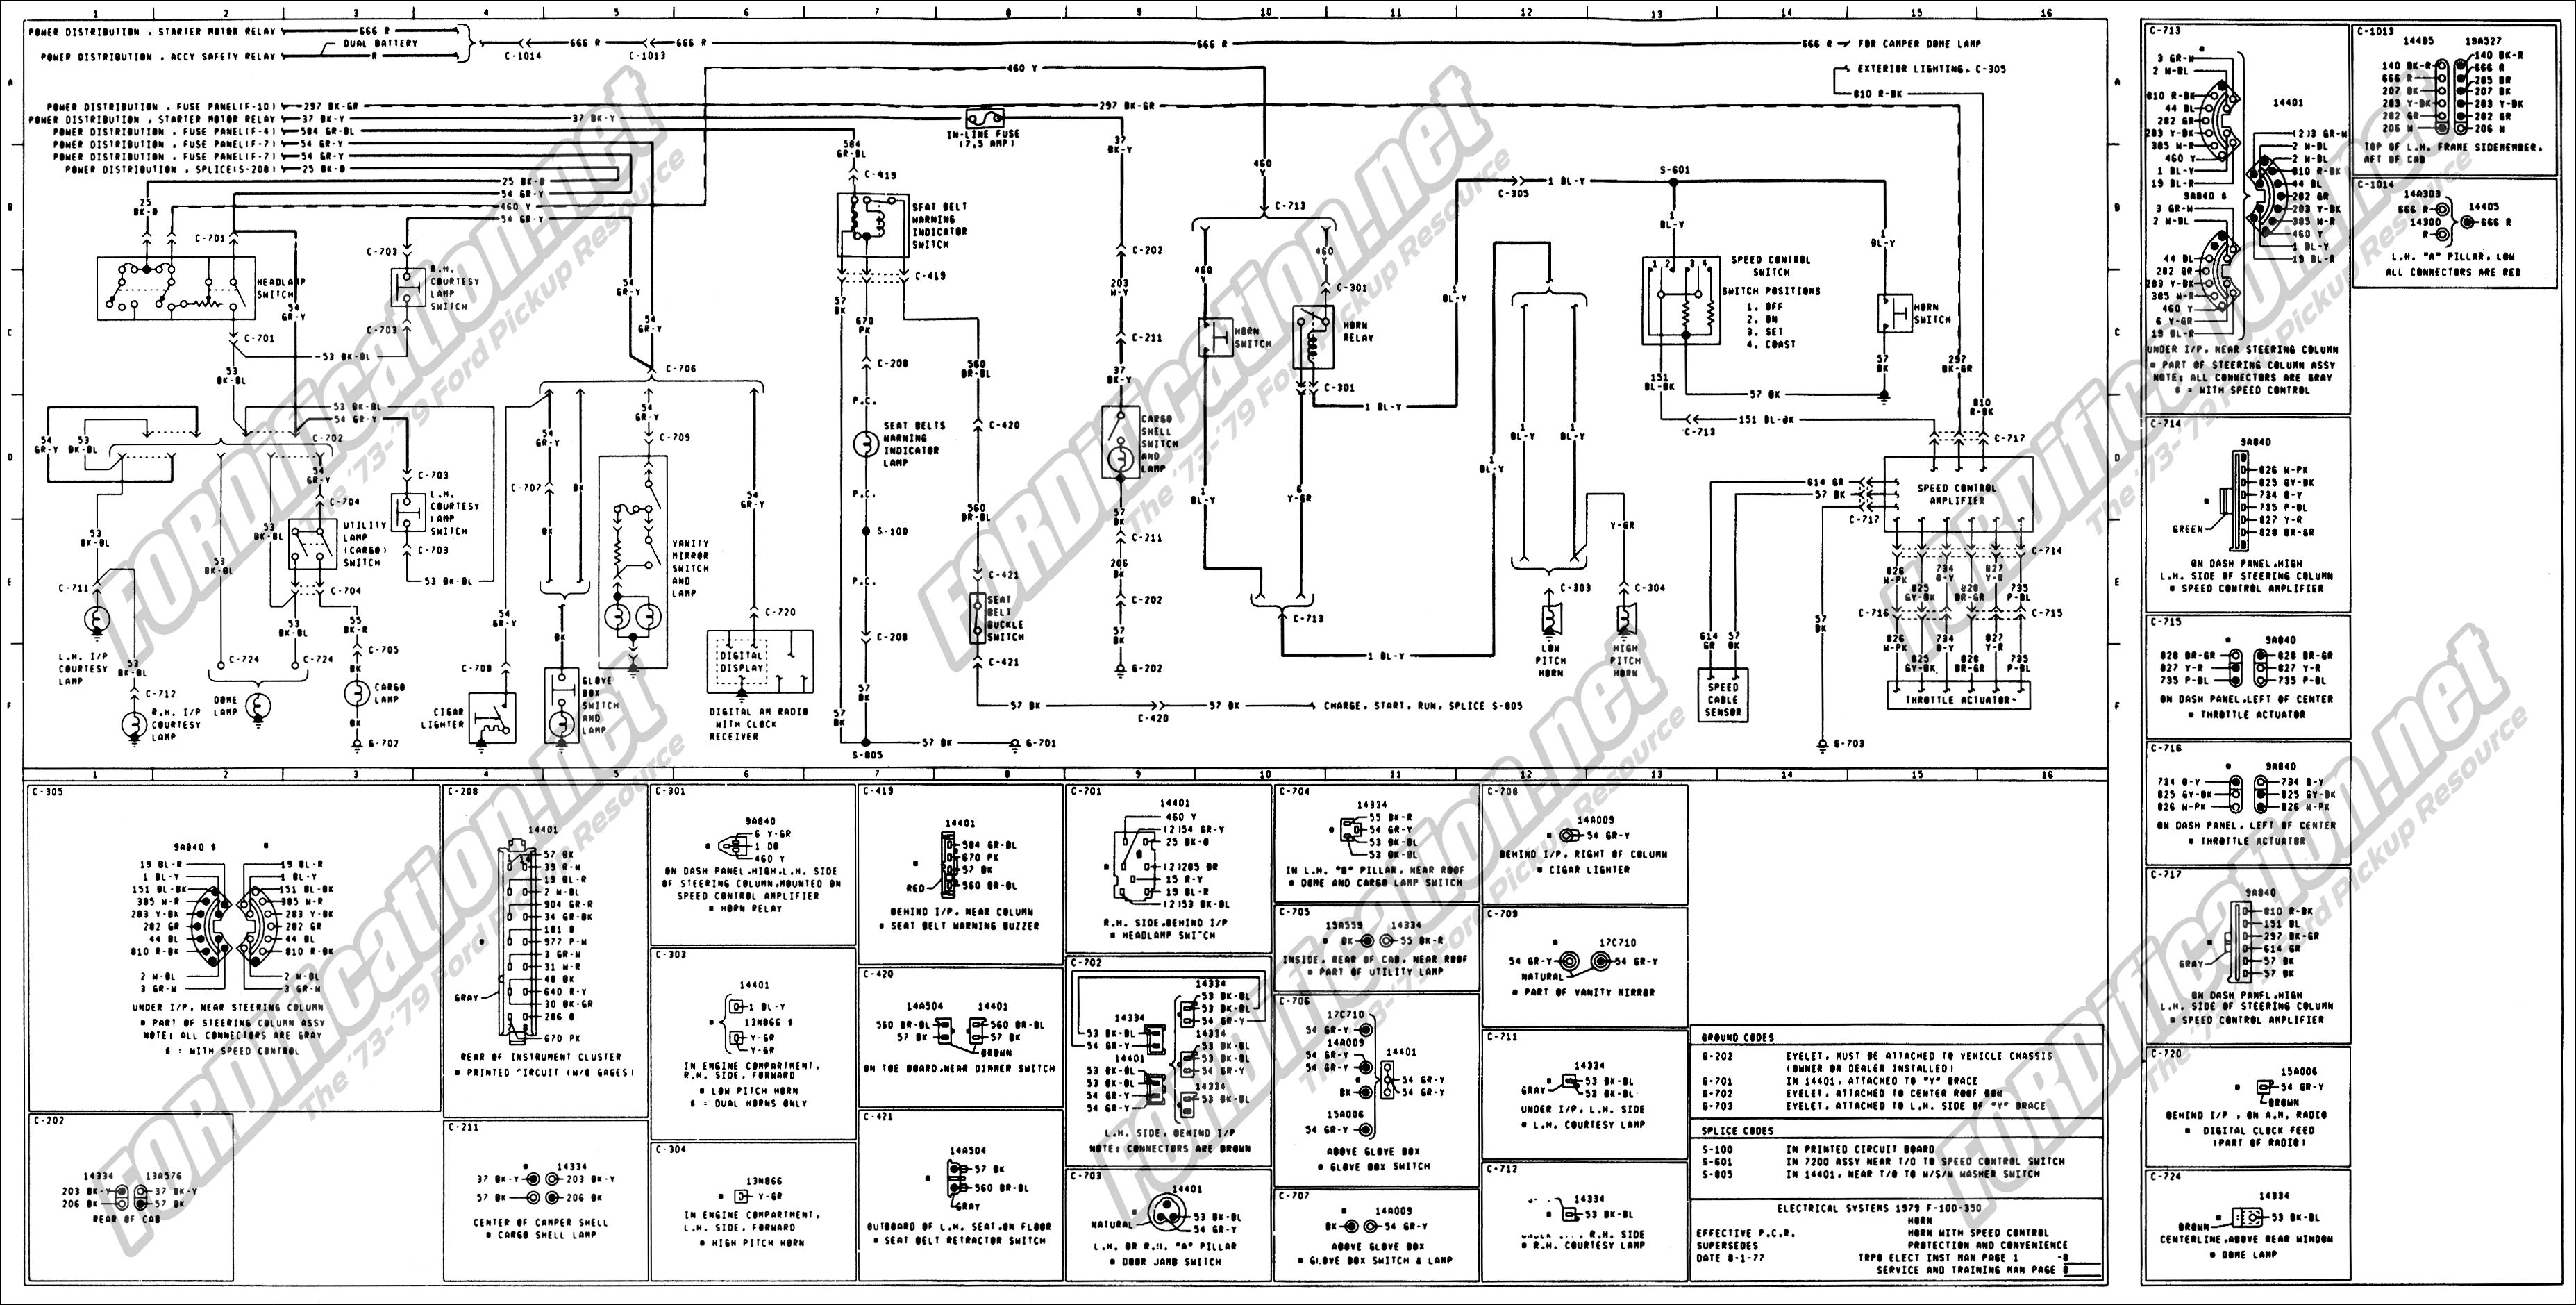 1976 ford truck wiring diagram wiring diagram u2022 rh tinyforge co Ford Truck Wiring Diagrams Ford F-250 Wiring Diagram